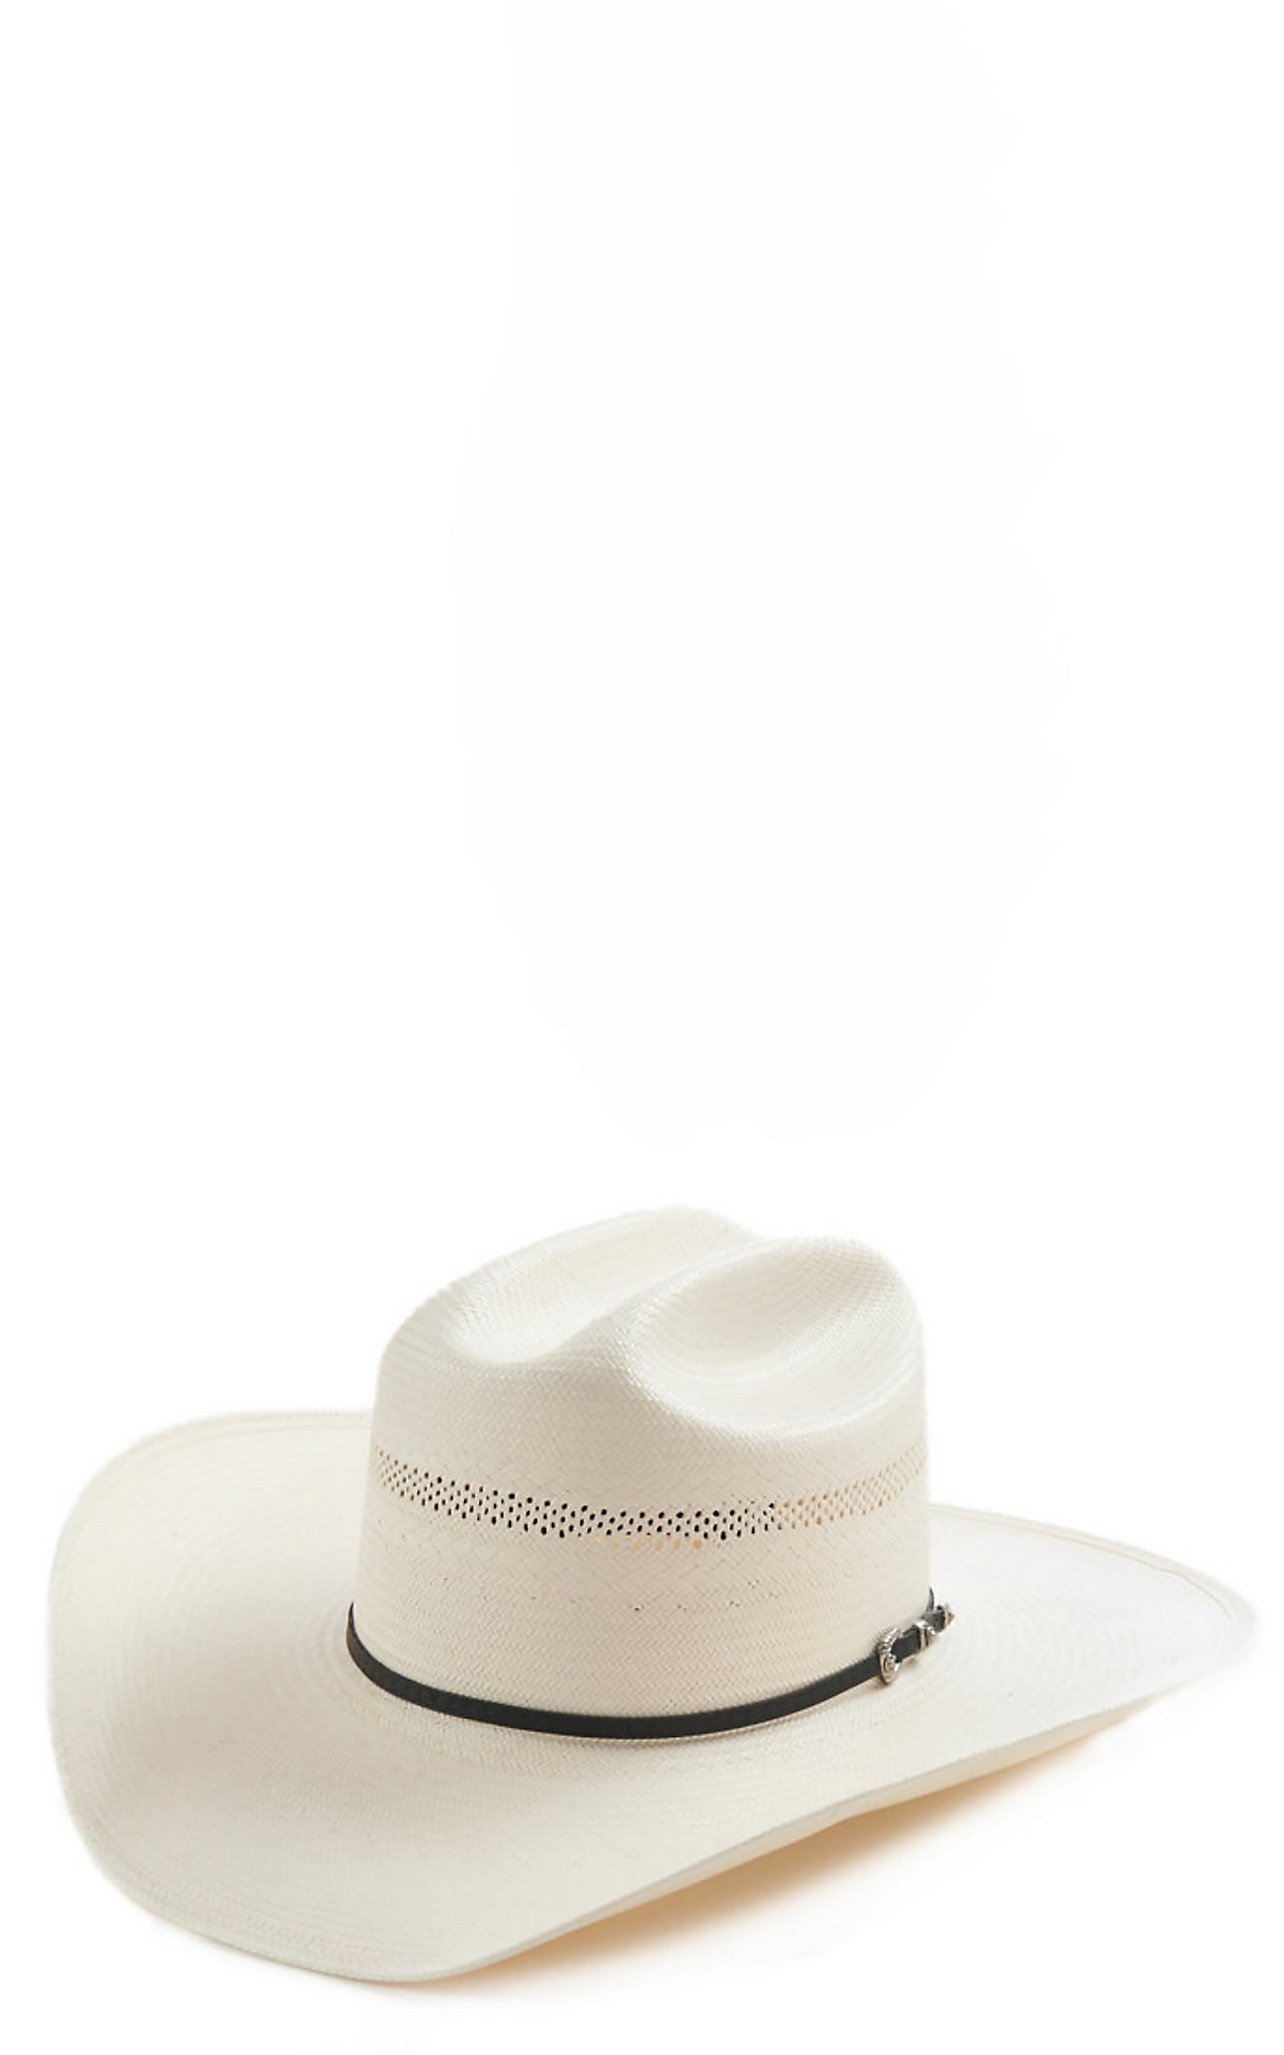 Resistol 7X Wyoming Vent Cattleman Crown Cowboy Hat  34a9be9576a